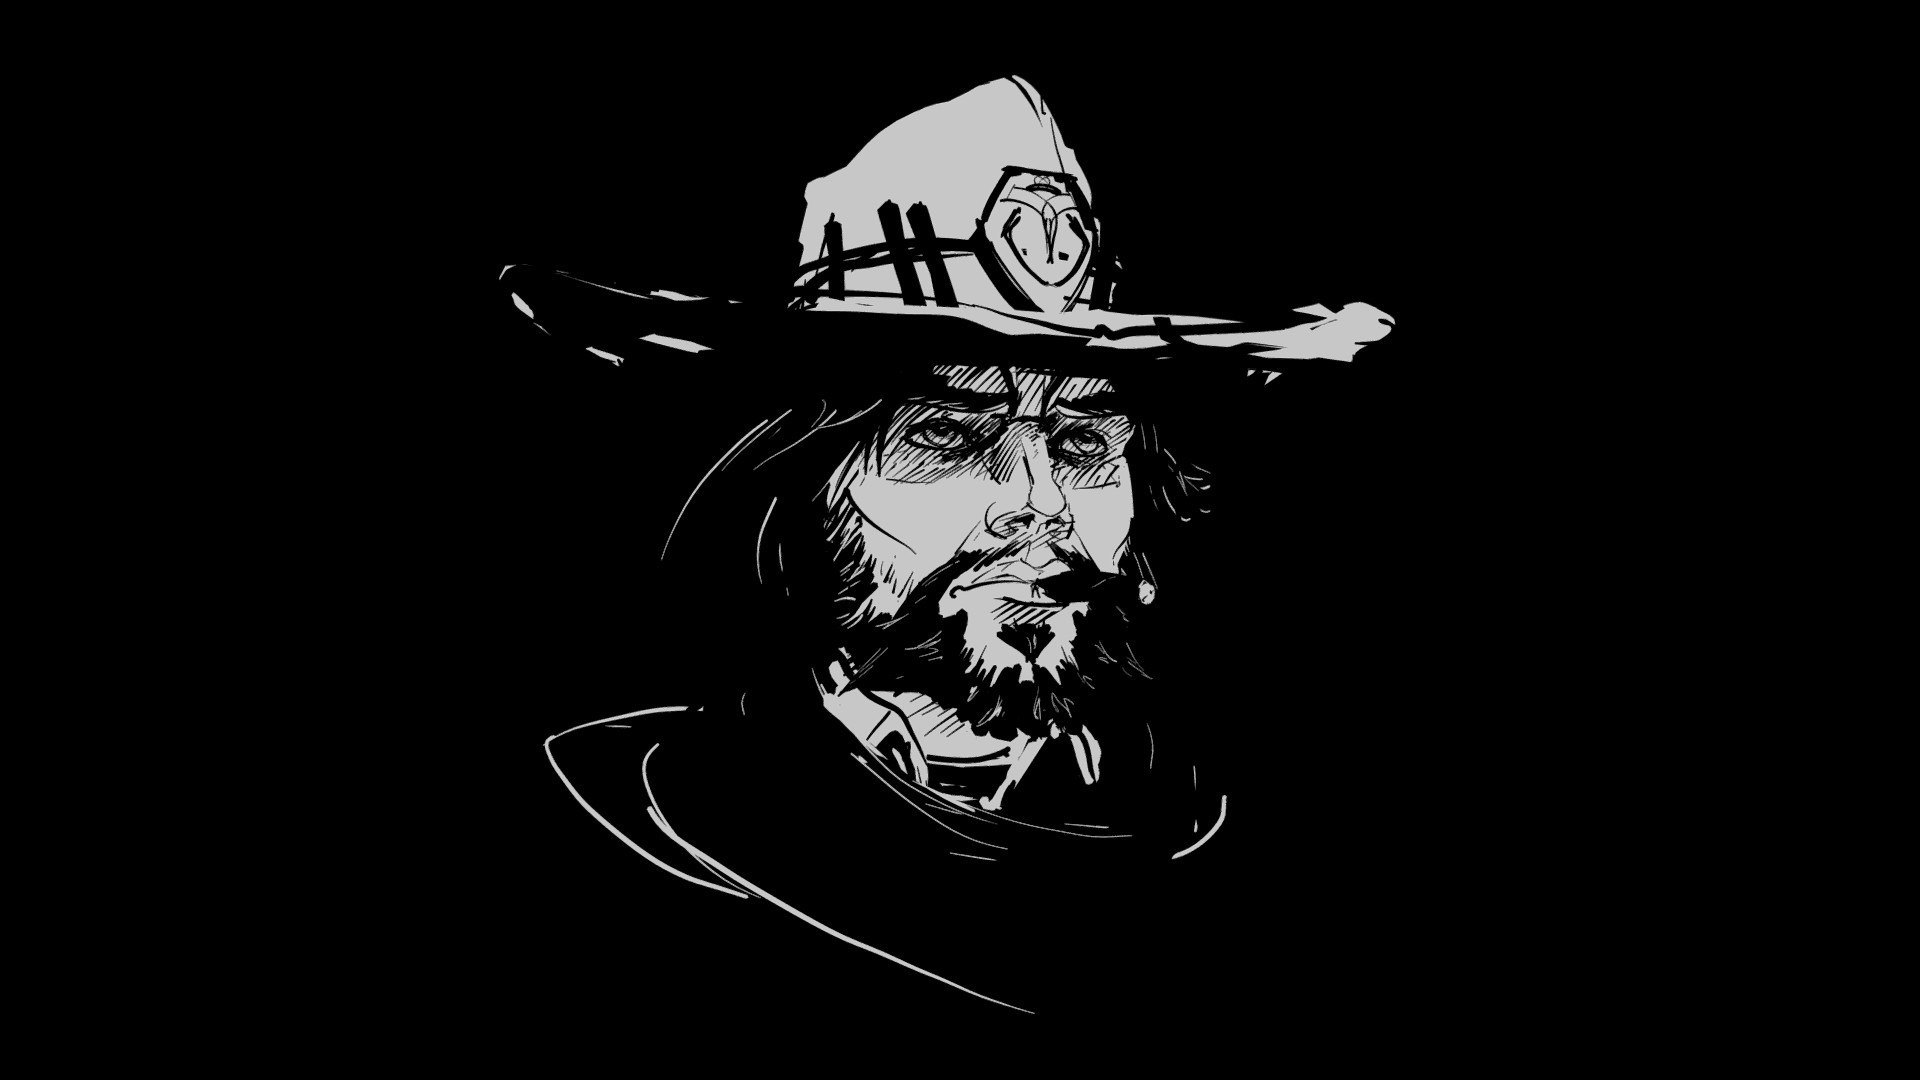 Elizabeth edwards tilt brush overwatch fanart mccree